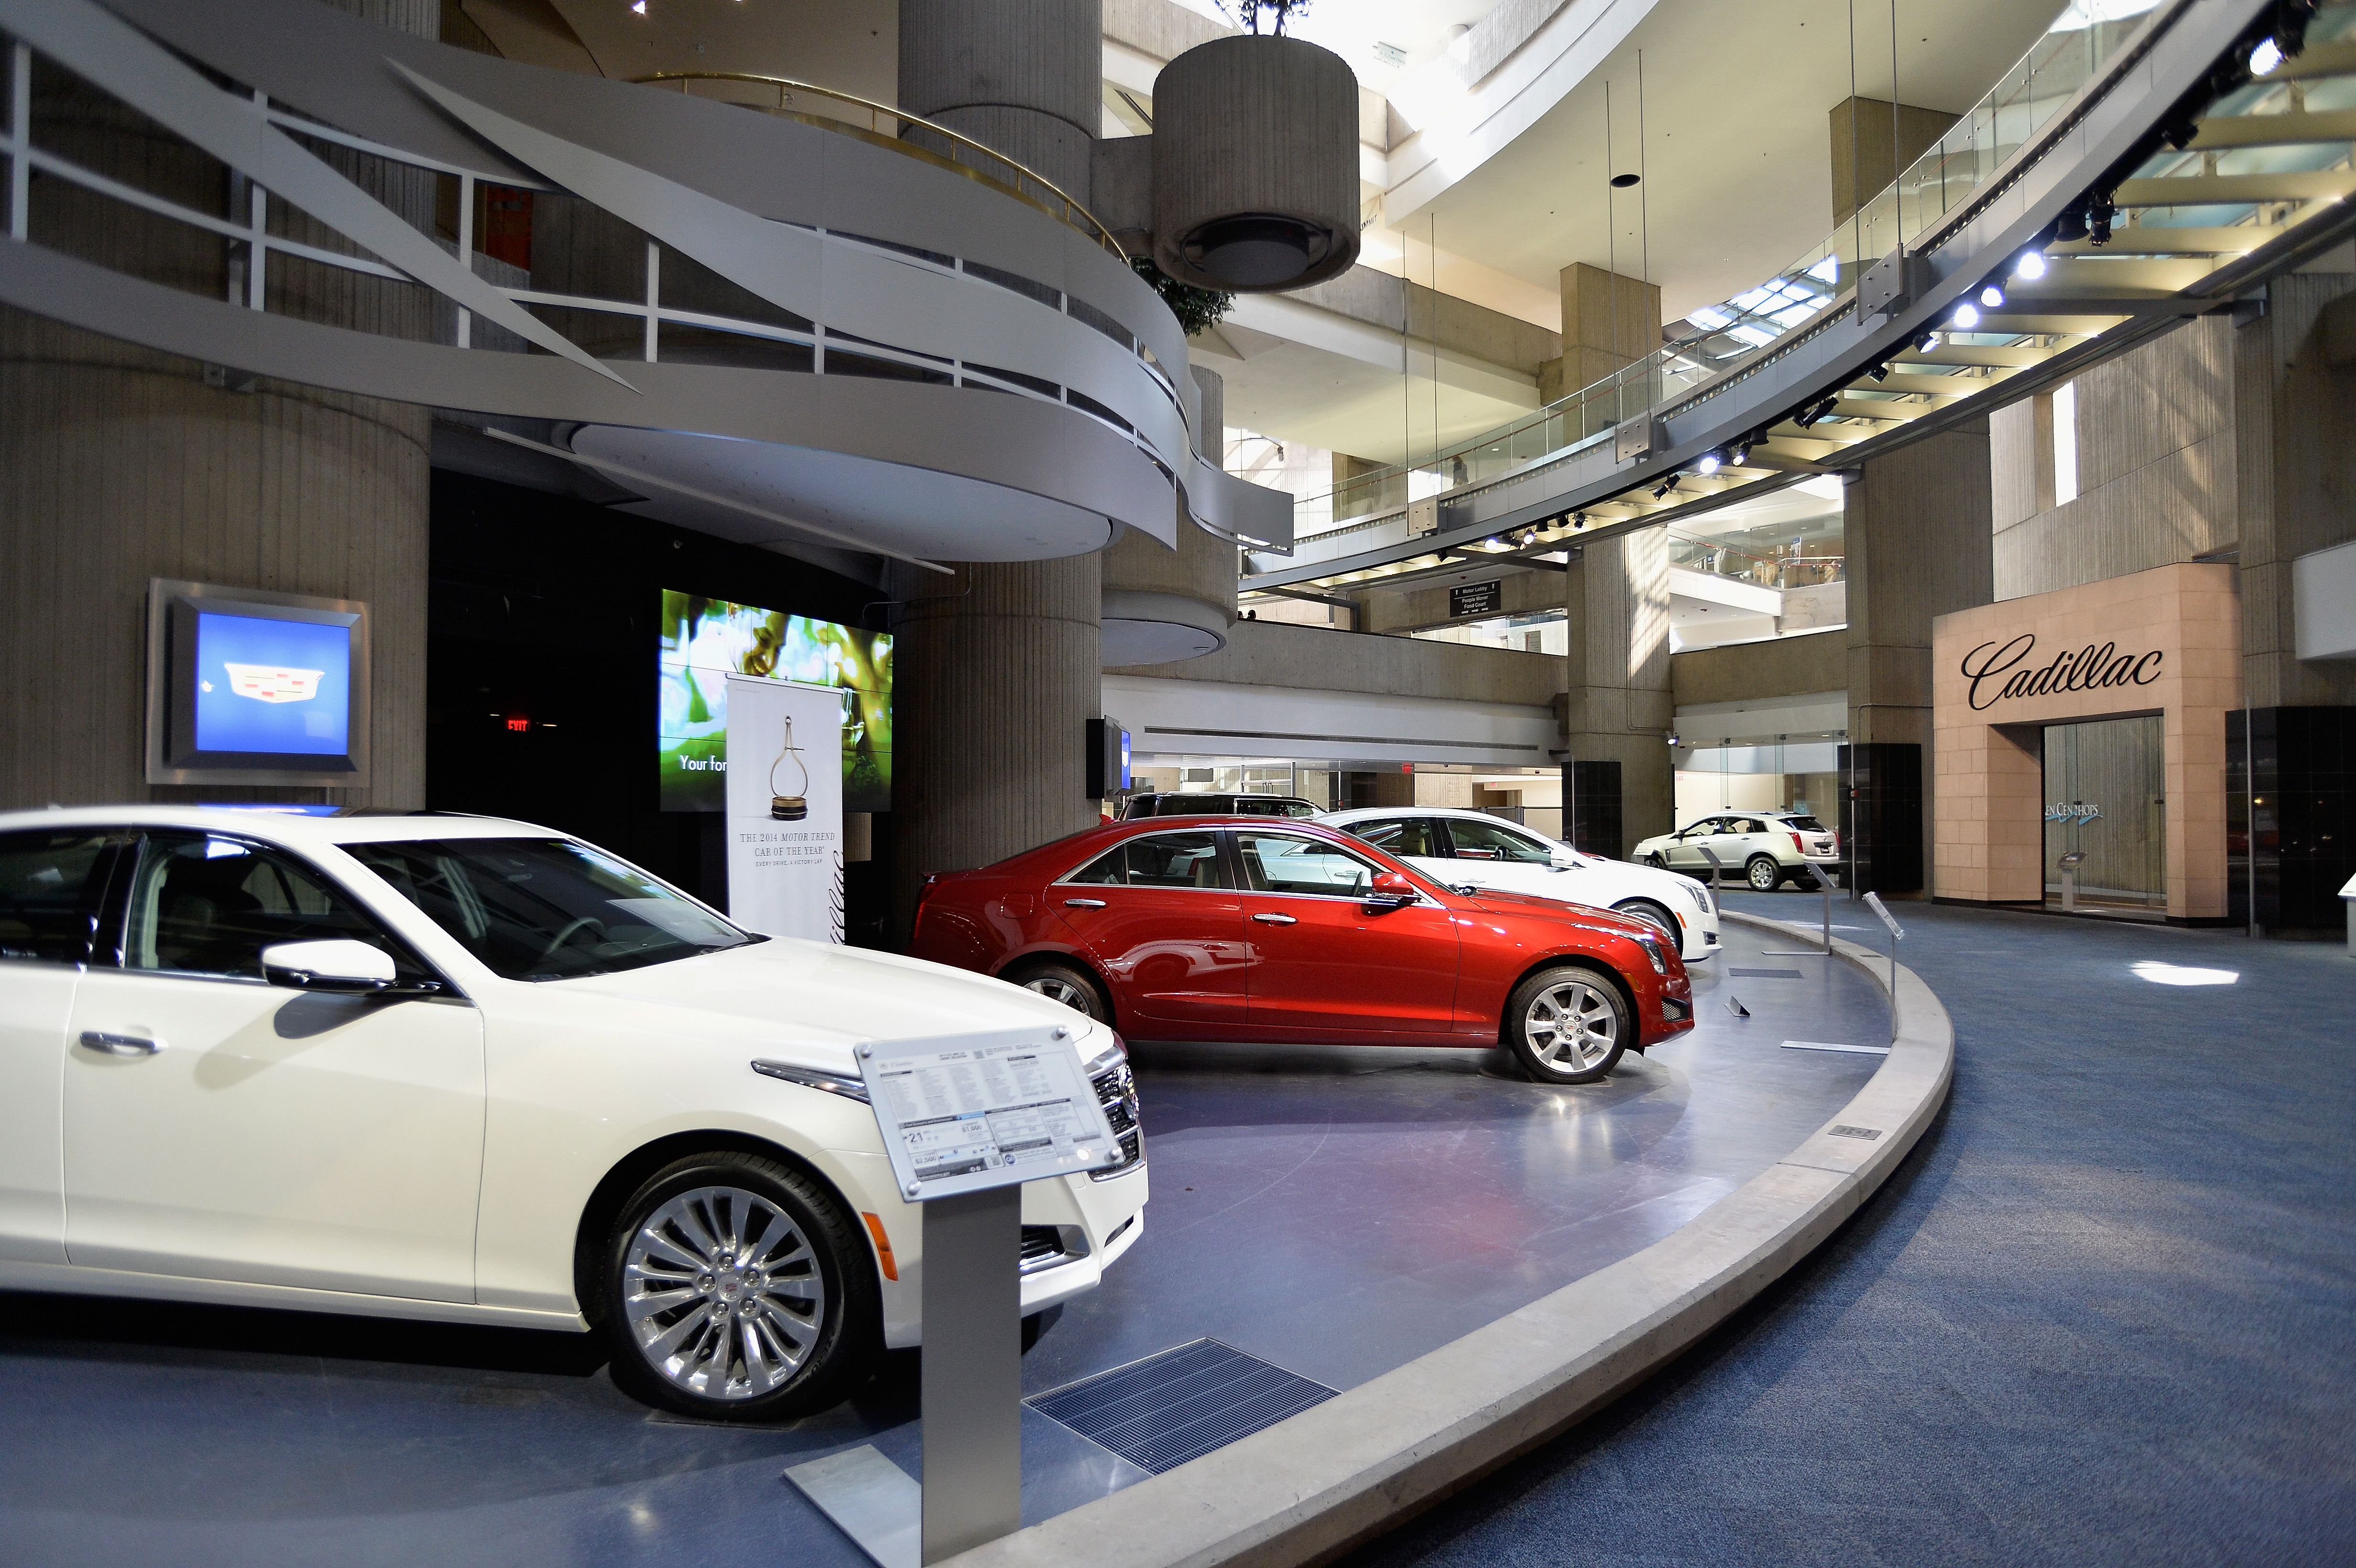 A general view of the Cadillac showroom in the General Motors Renaissance Center on August 14, 2014 in Detroit, Michigan.